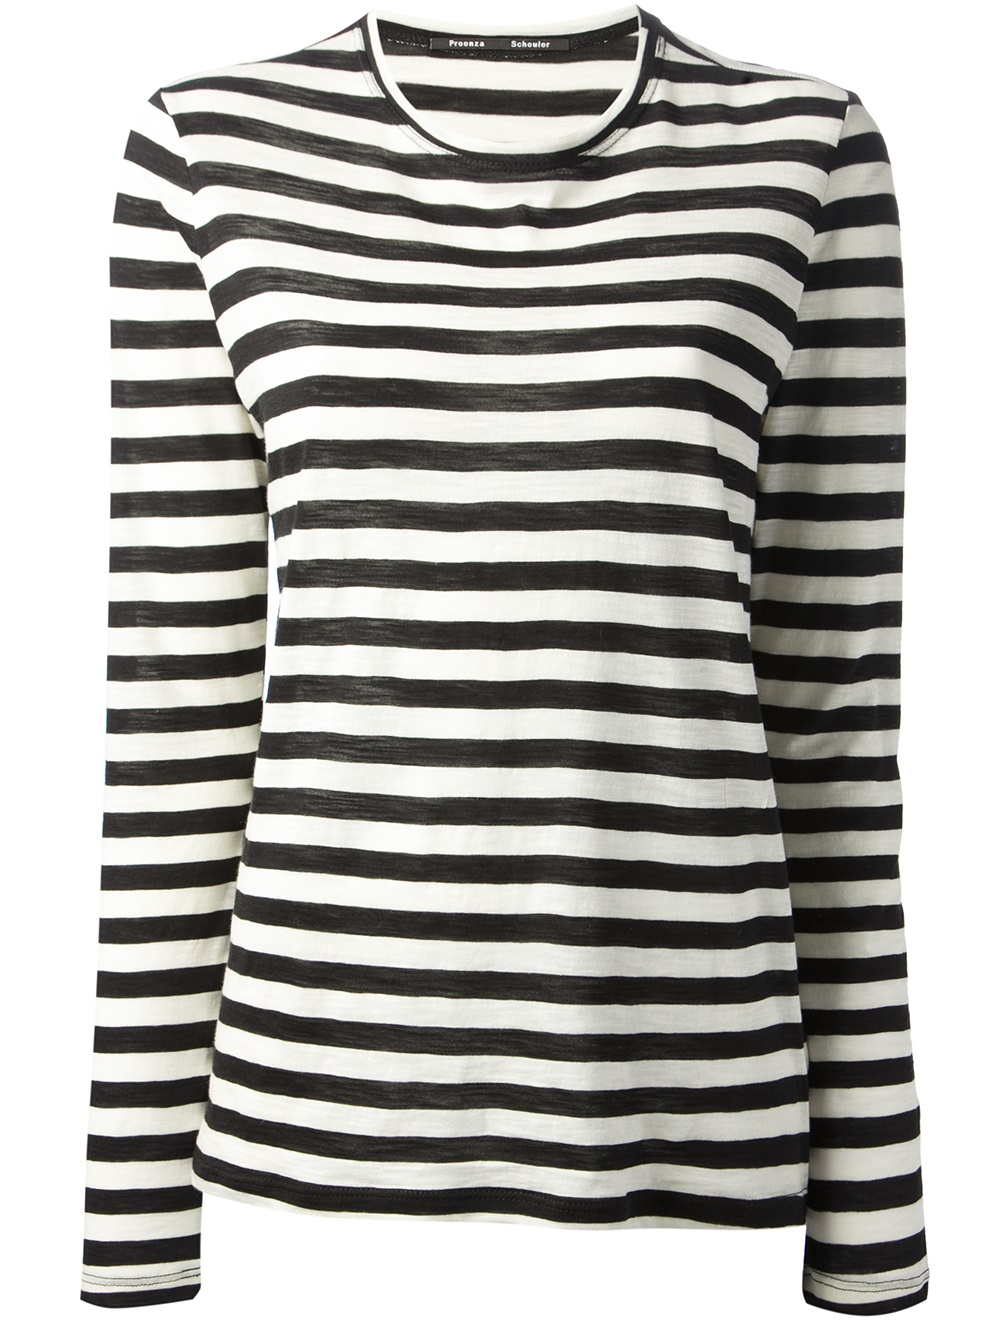 465143f58ca9 Black And White Striped Tee Shirts Womens – DACC